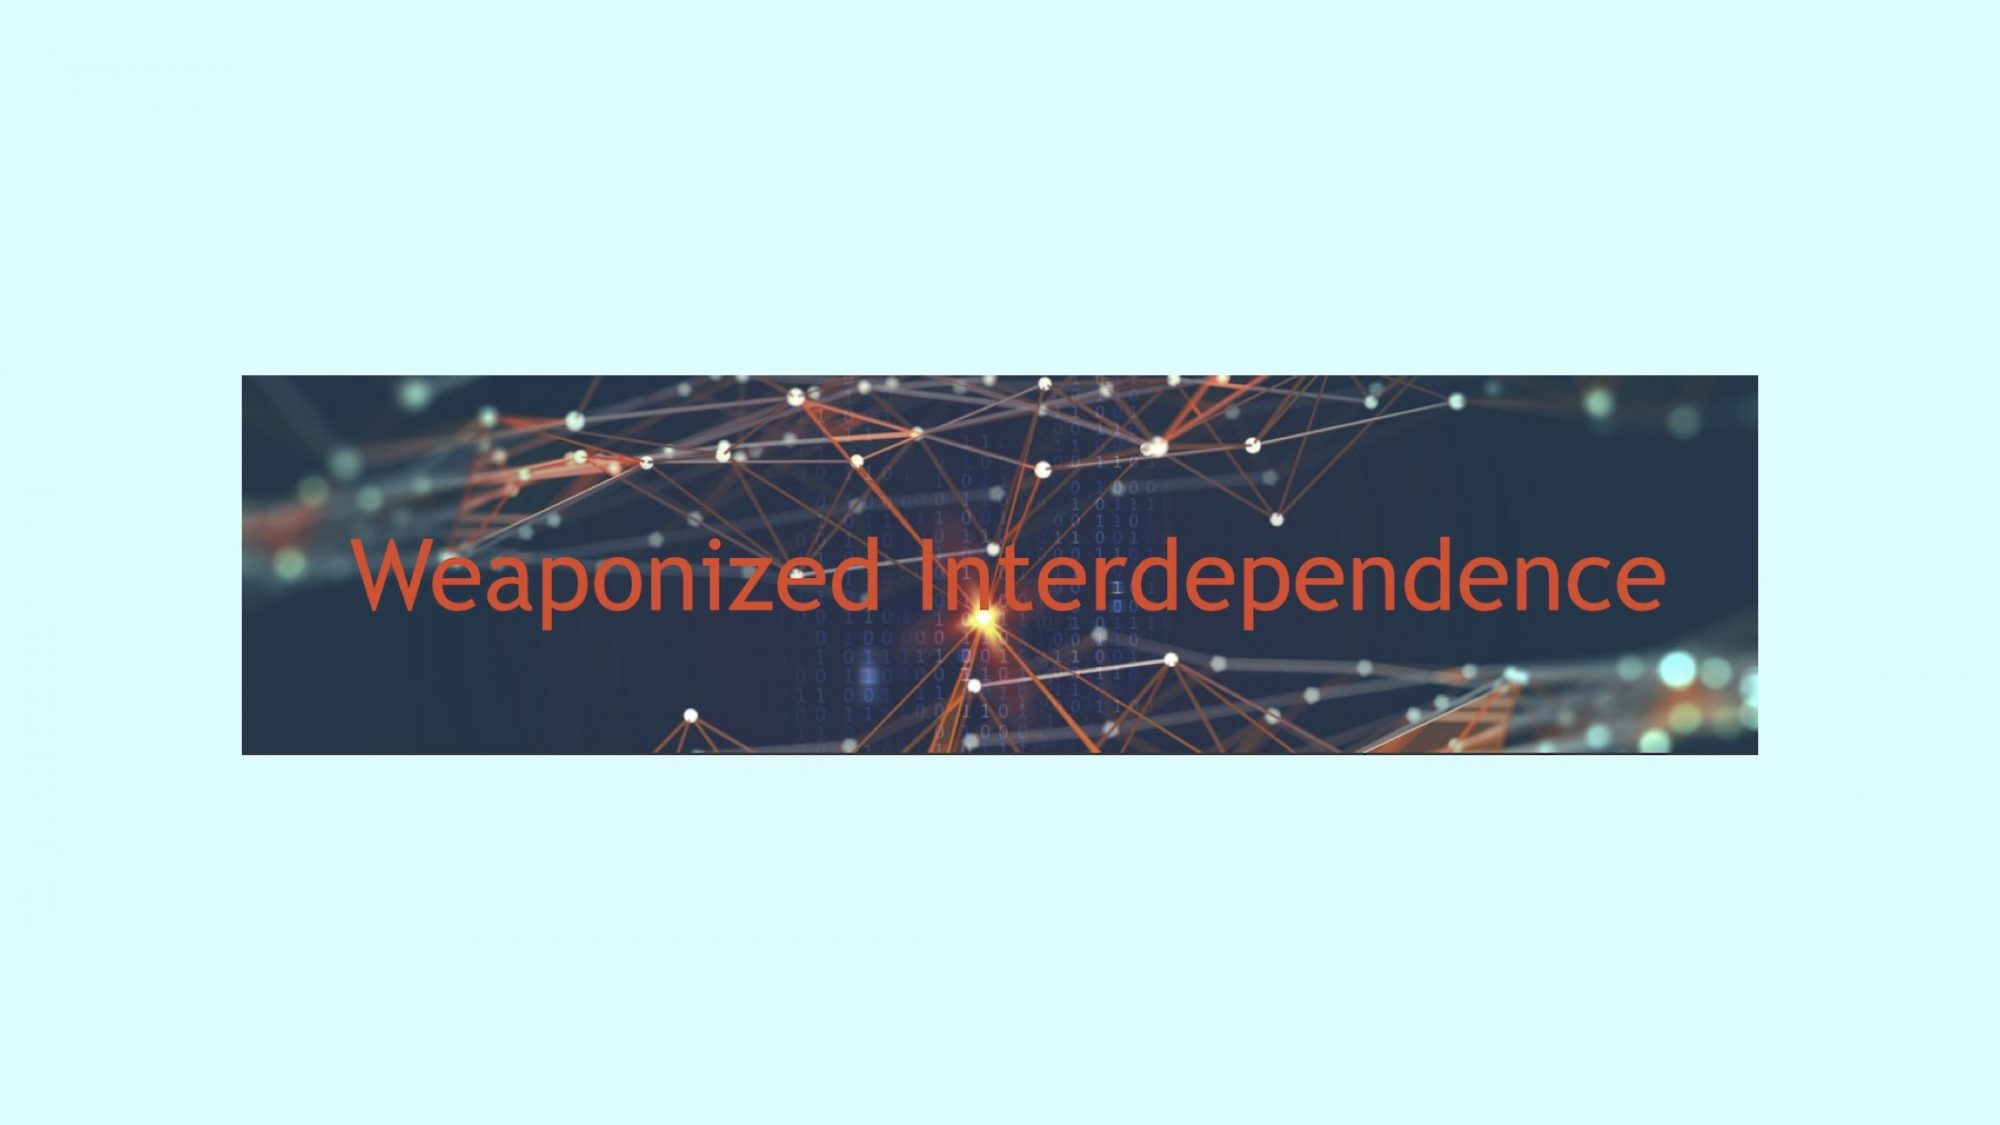 Weaponized Interdependence